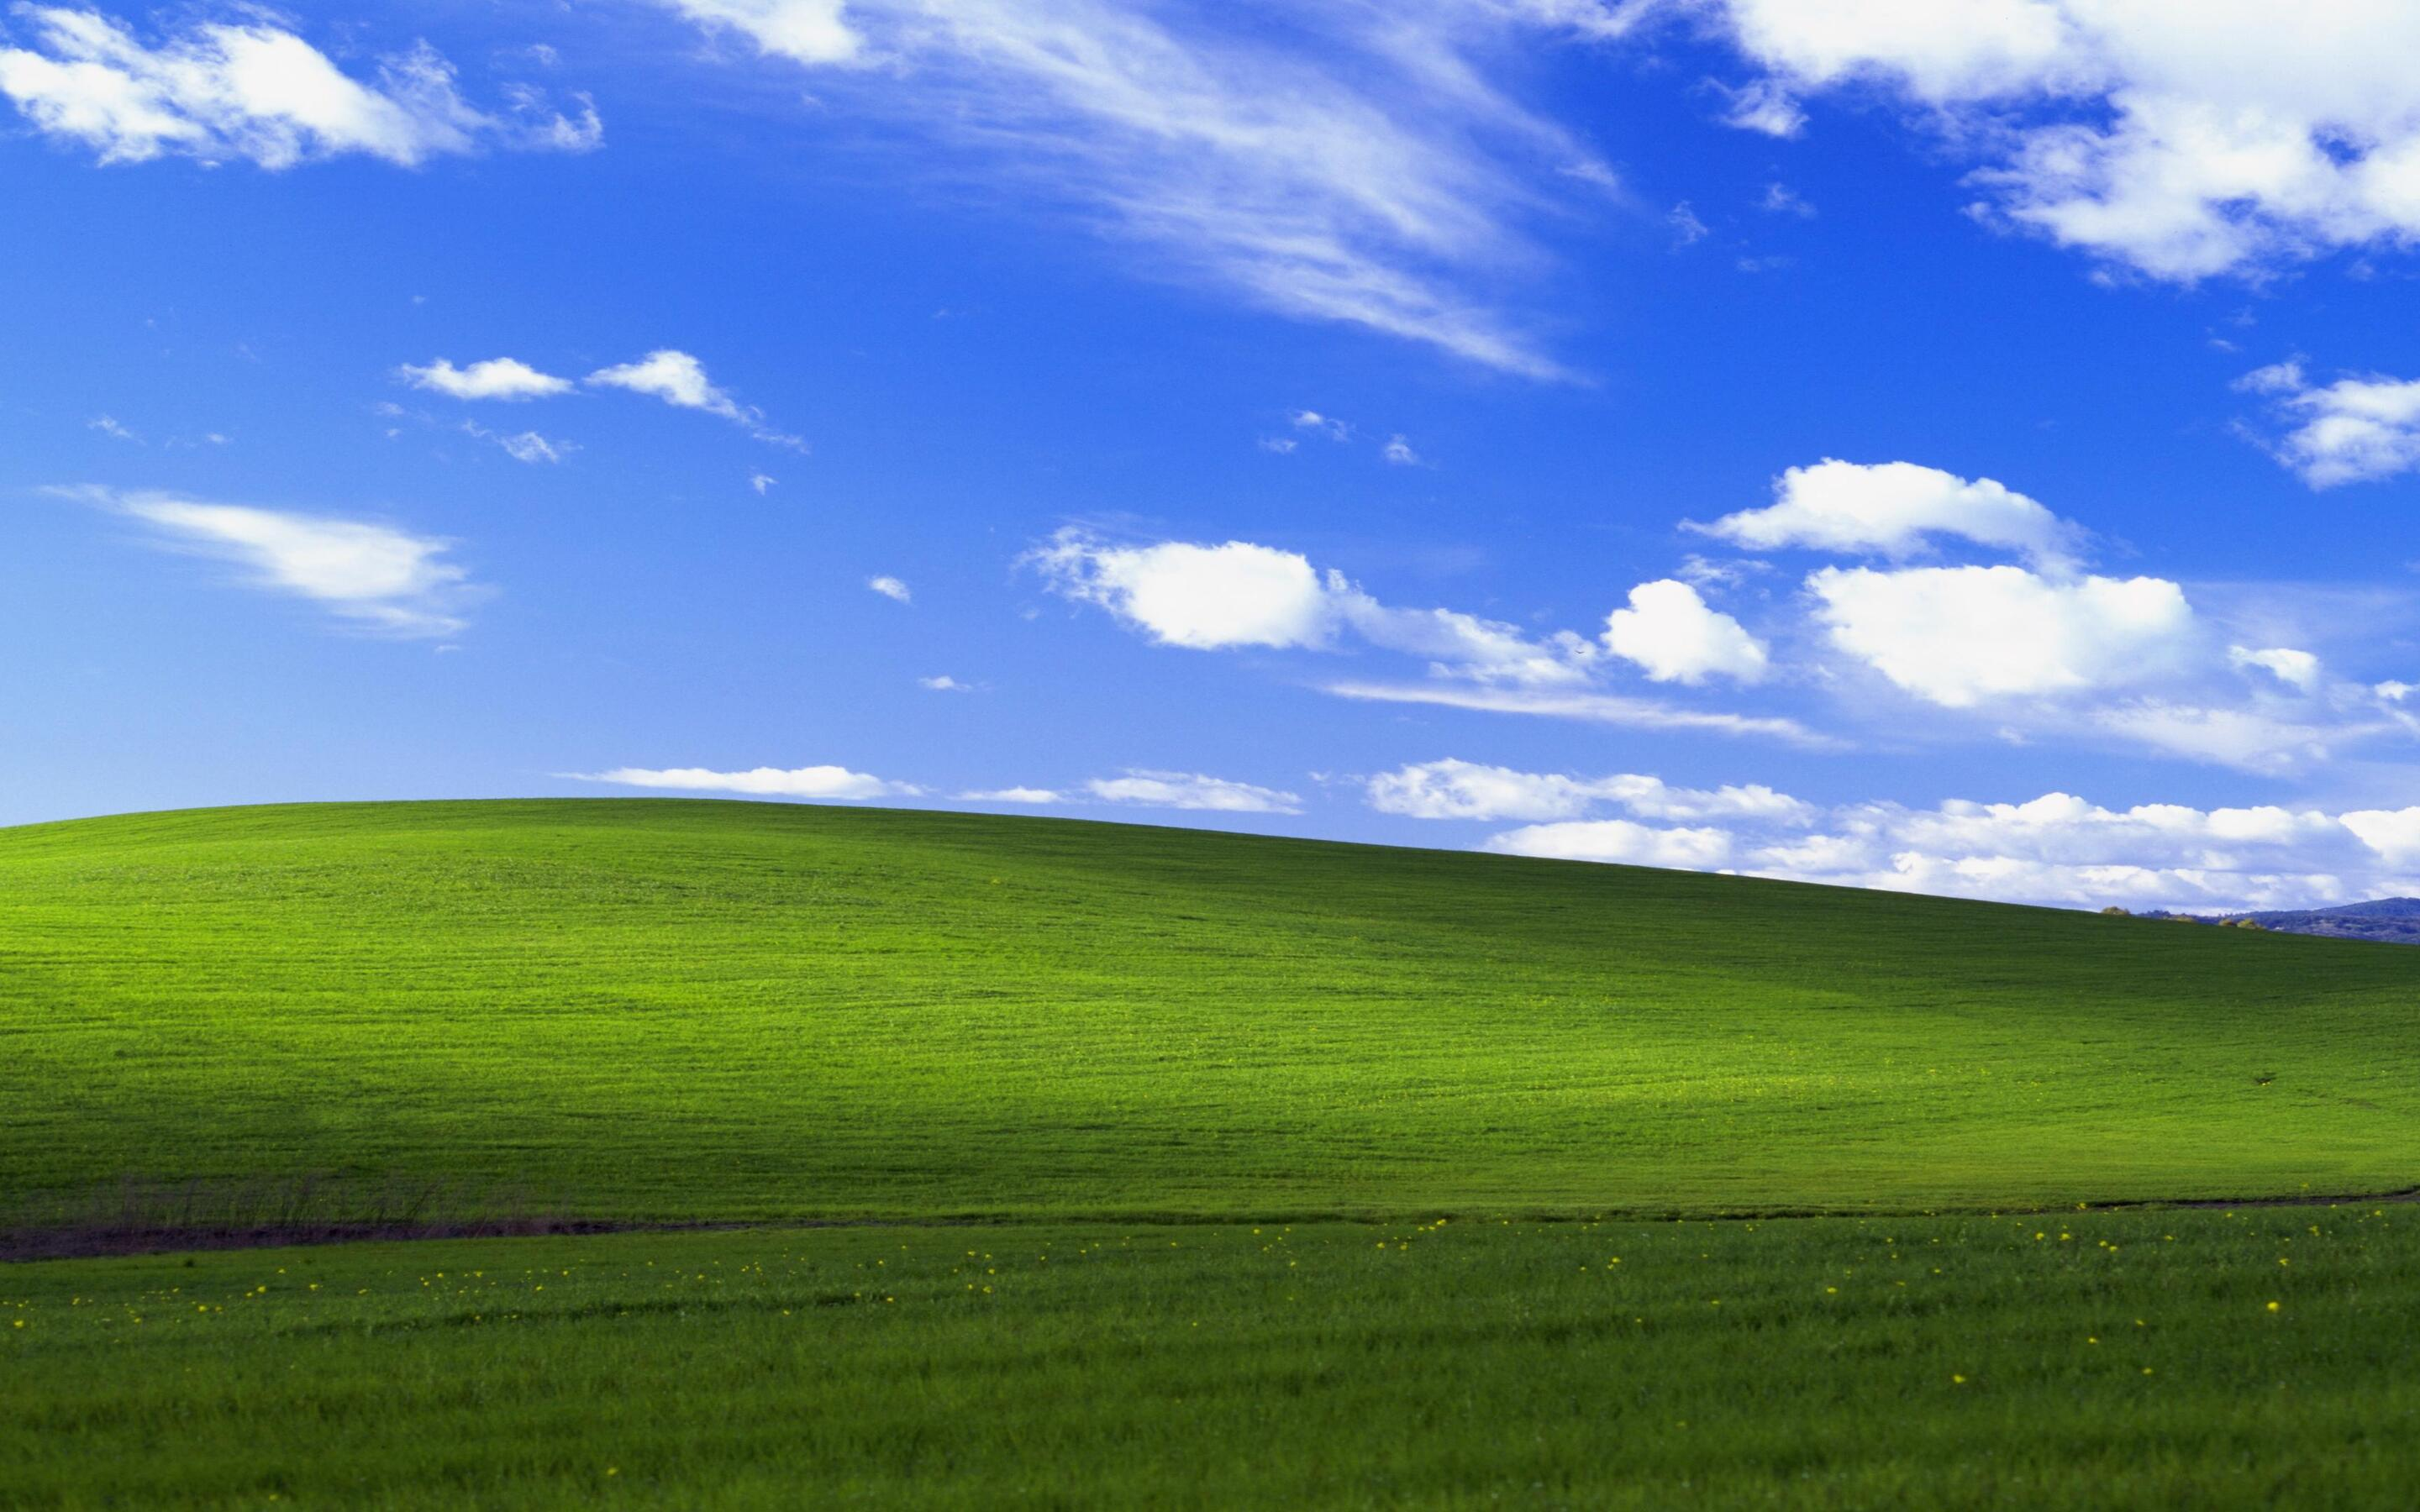 2880x1800 Windows Xp Bliss 4k Macbook Pro Retina HD 4k Wallpapers, Images, Backgrounds, Photos and Pictures